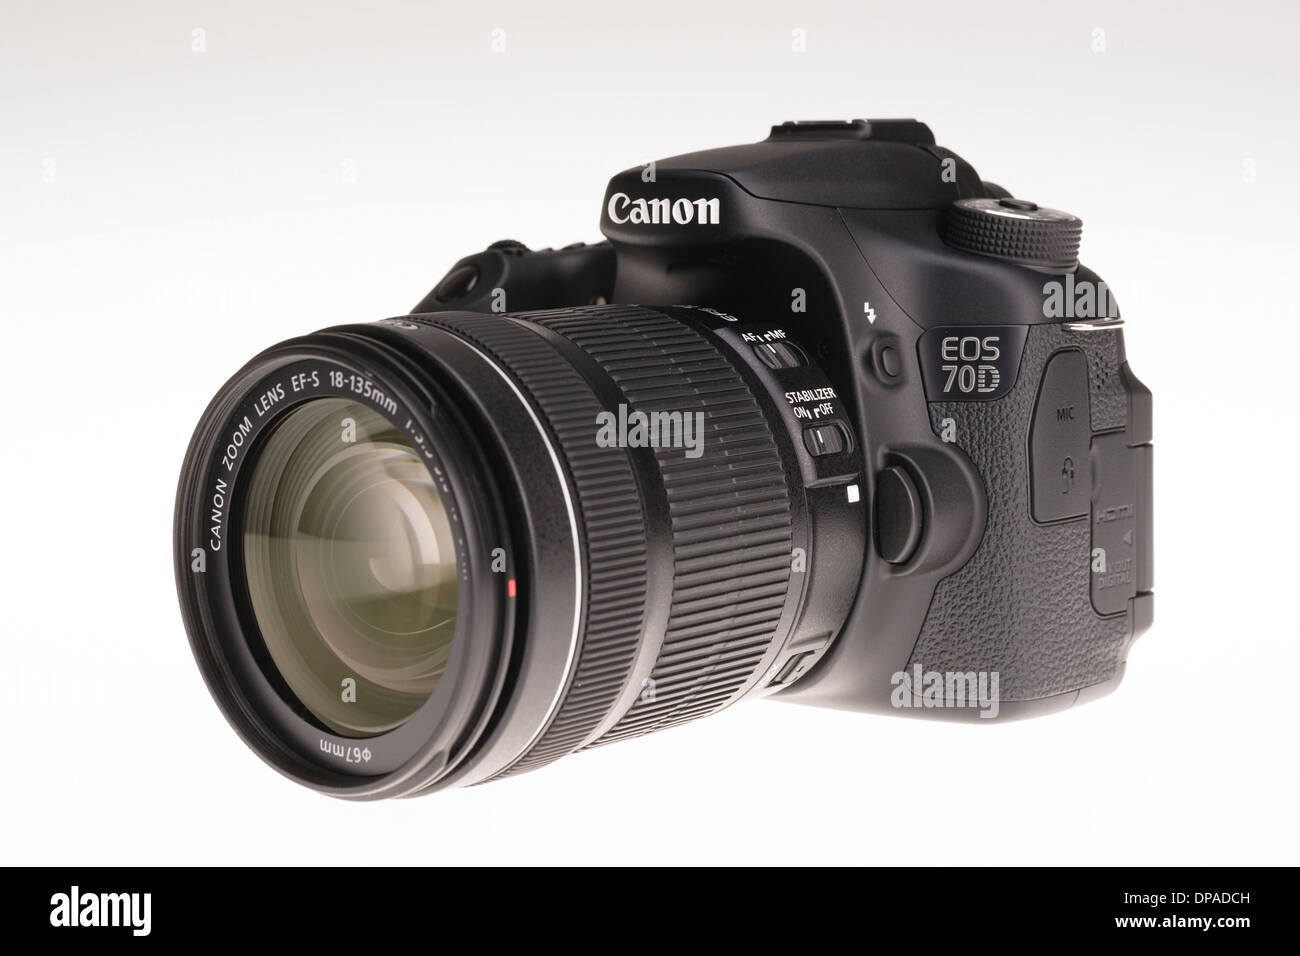 Digital photography equipment - Canon EOS 70D with zoom lens Stock Photo